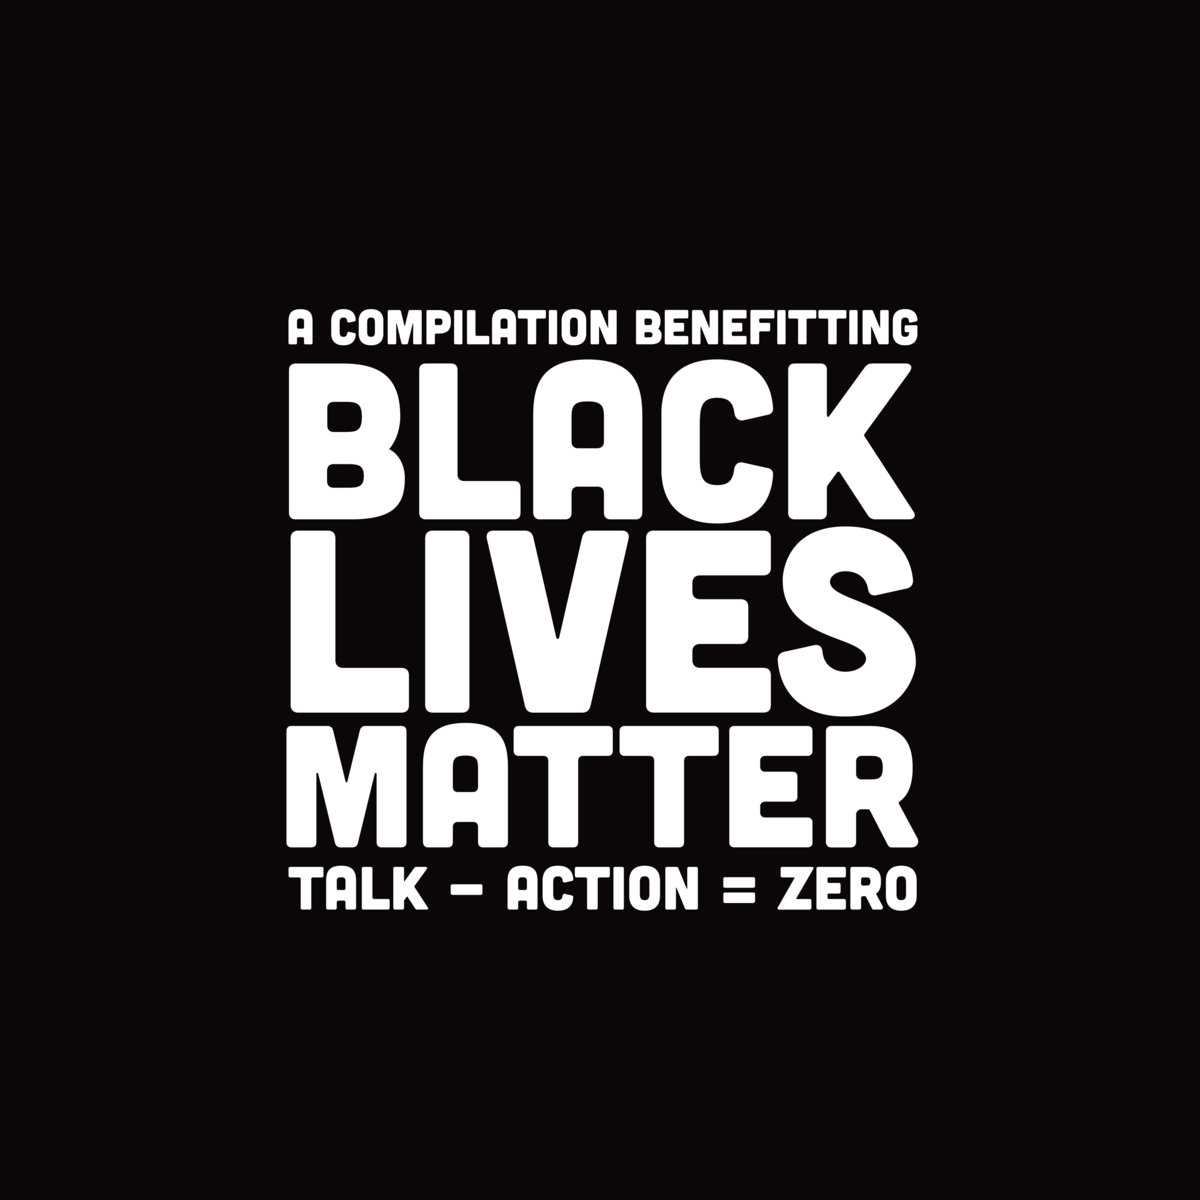 A compilation benefitting Black Lives Matter - Talk - Action = Zero